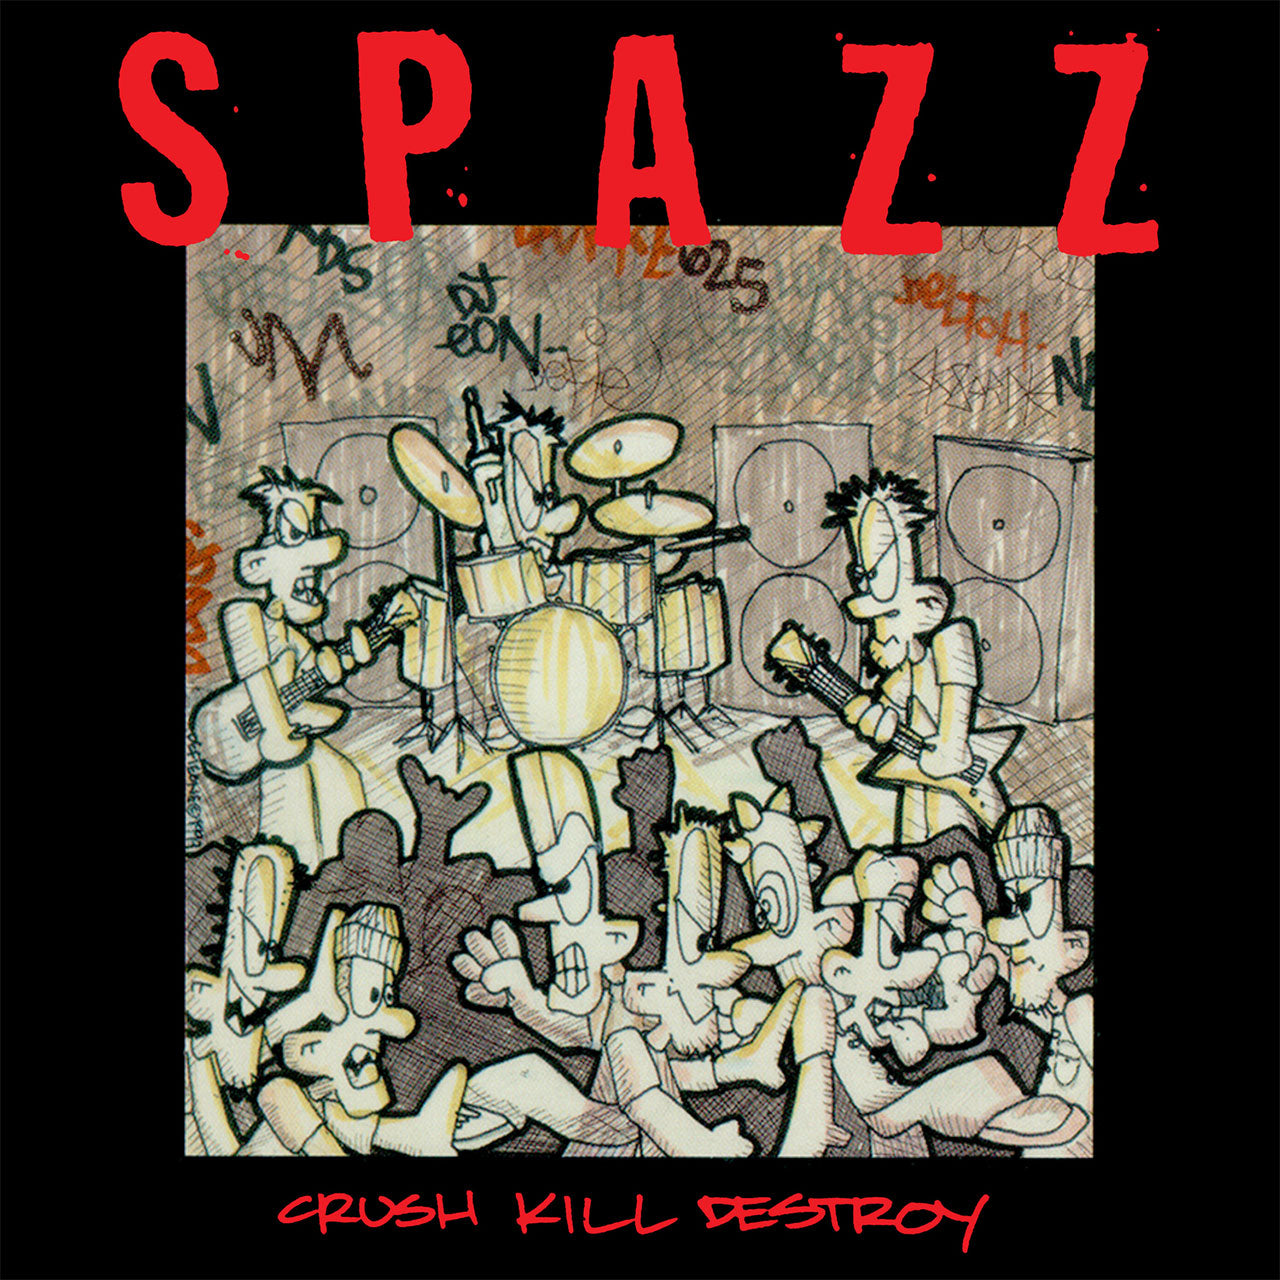 Spazz - Crush Kill Destroy (2018 Reissue) (CD)